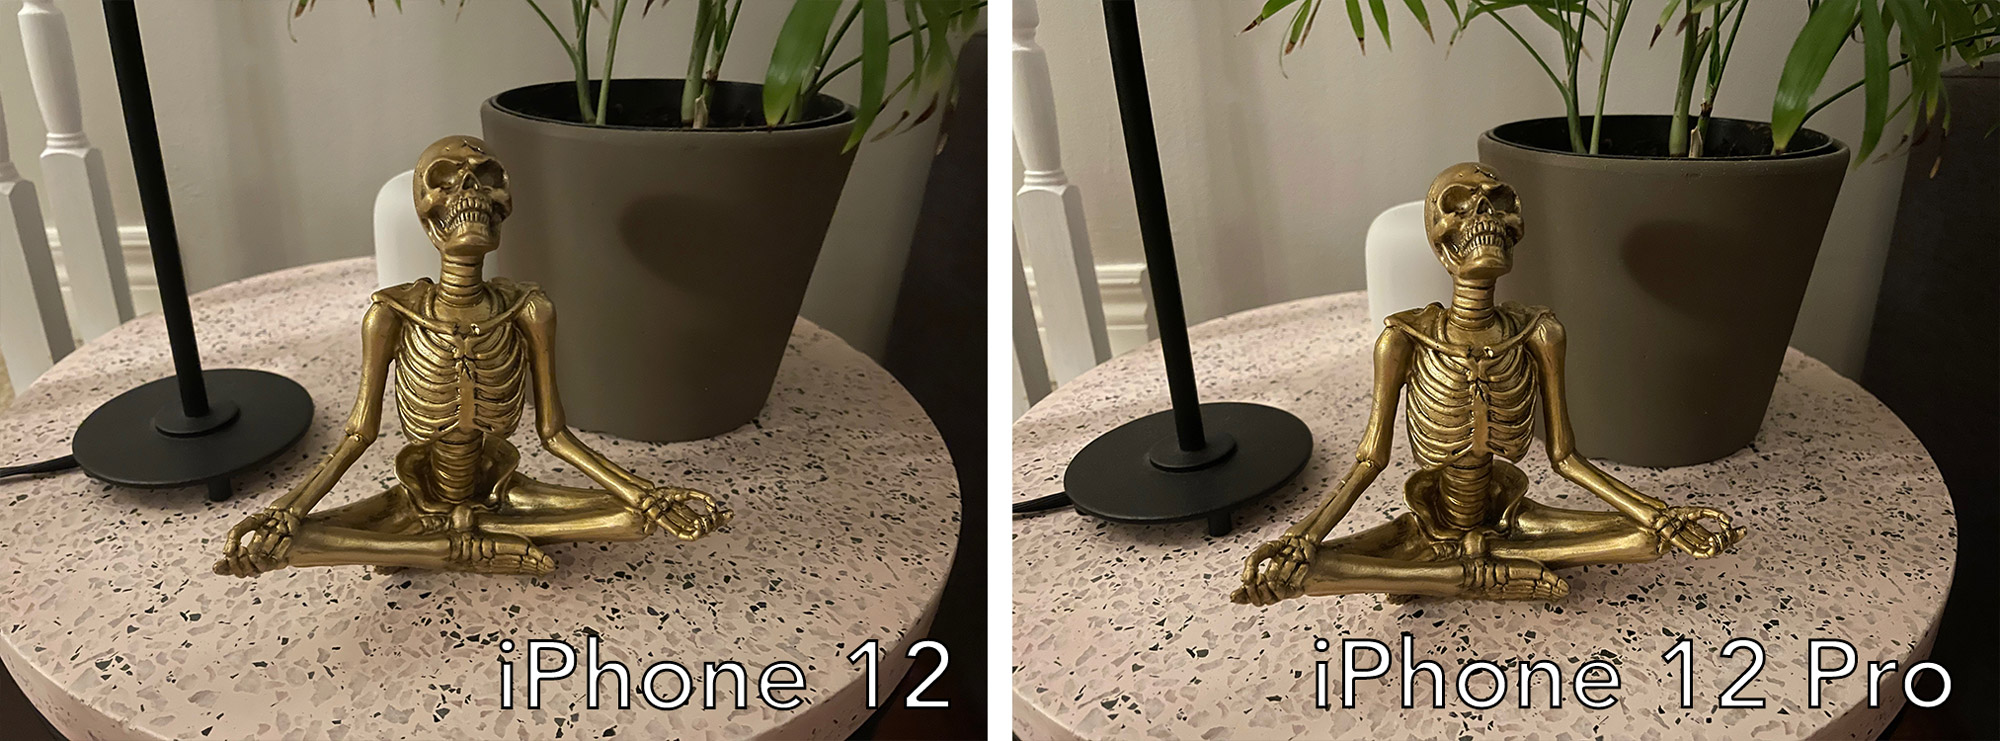 iPhone 12 low-light photo comparison.